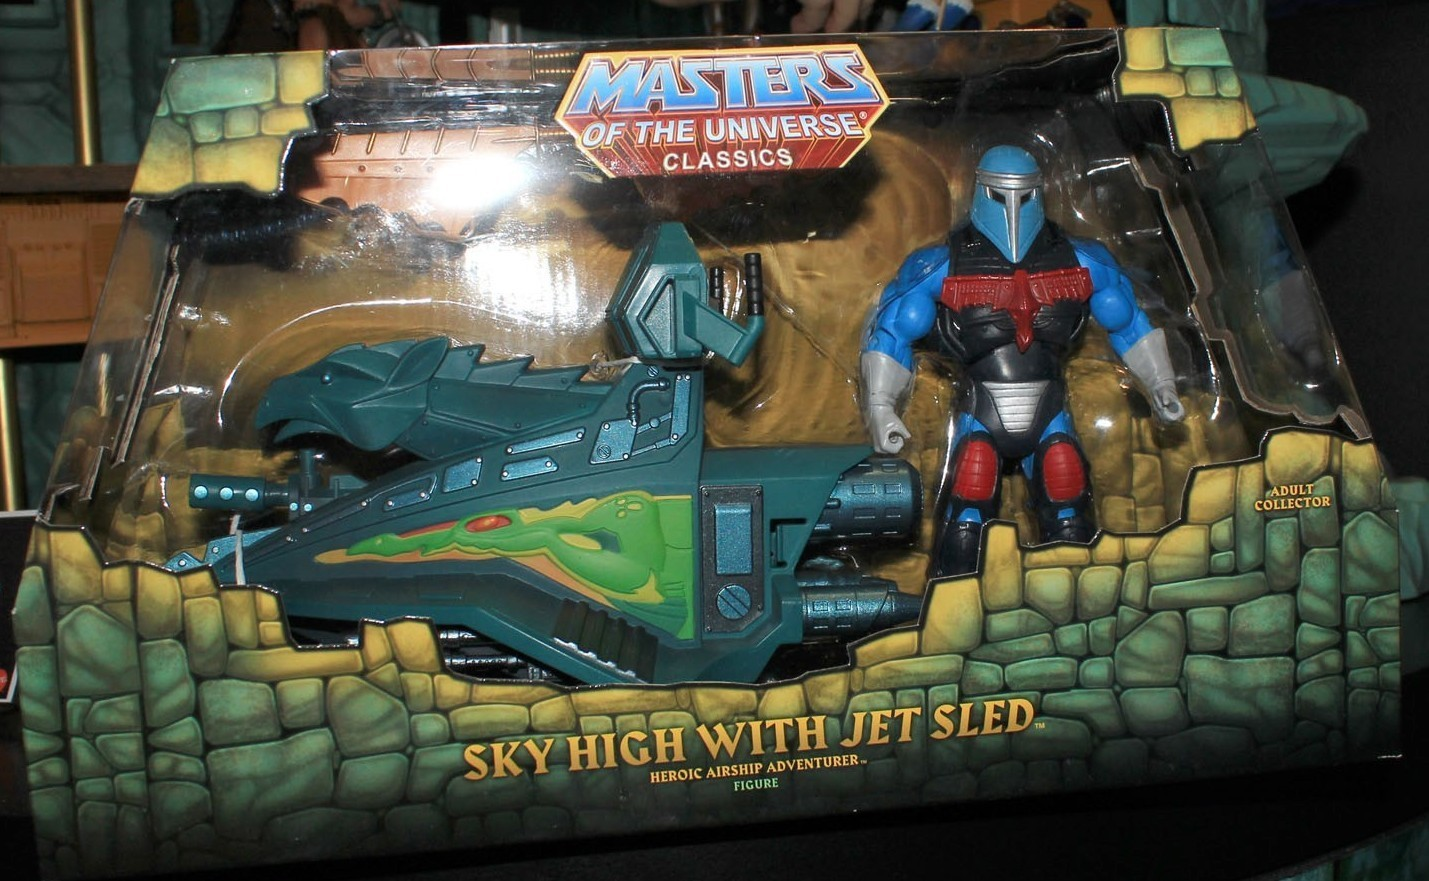 He-Man org > Toys > Masters of the Universe Classics > Sky